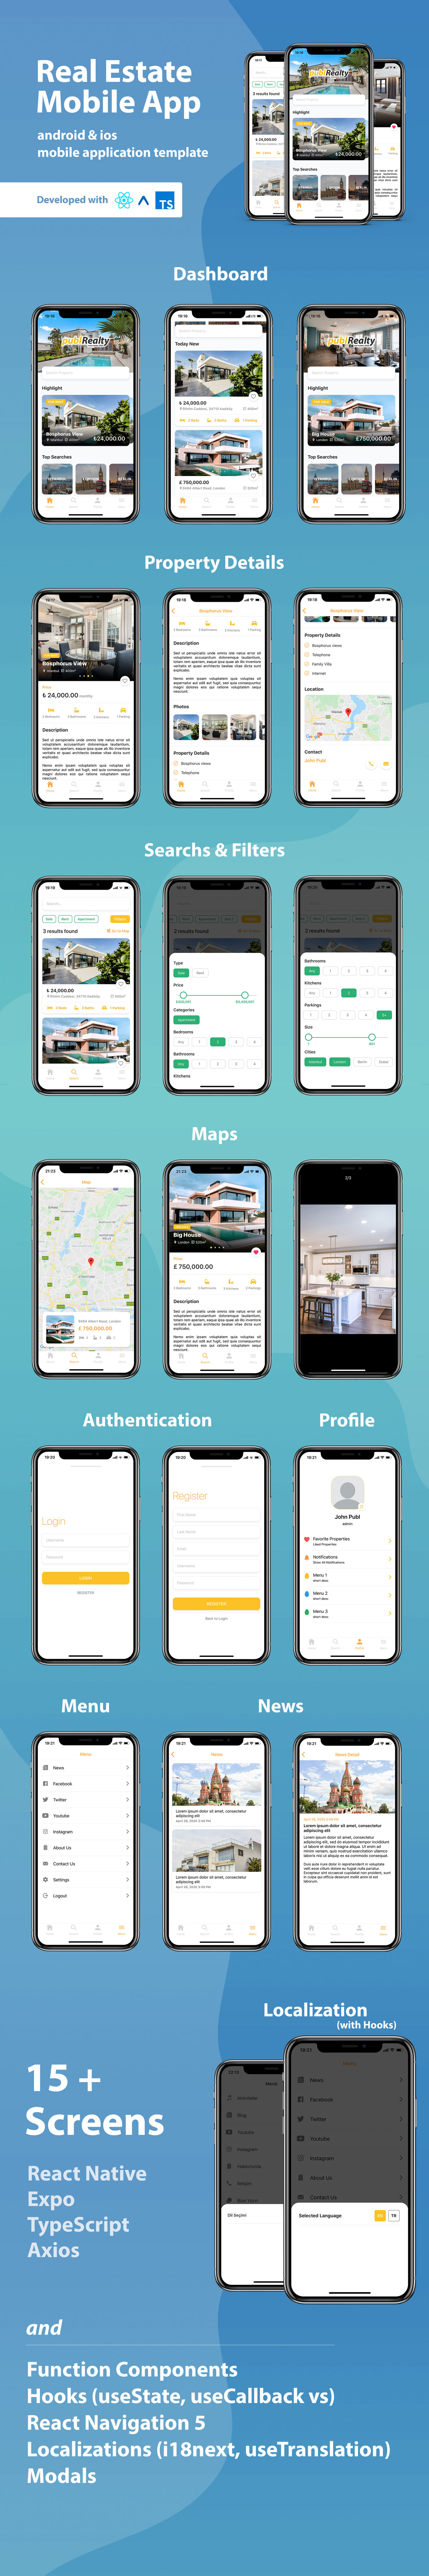 Real Estate Mobile App Template With React Native - 1